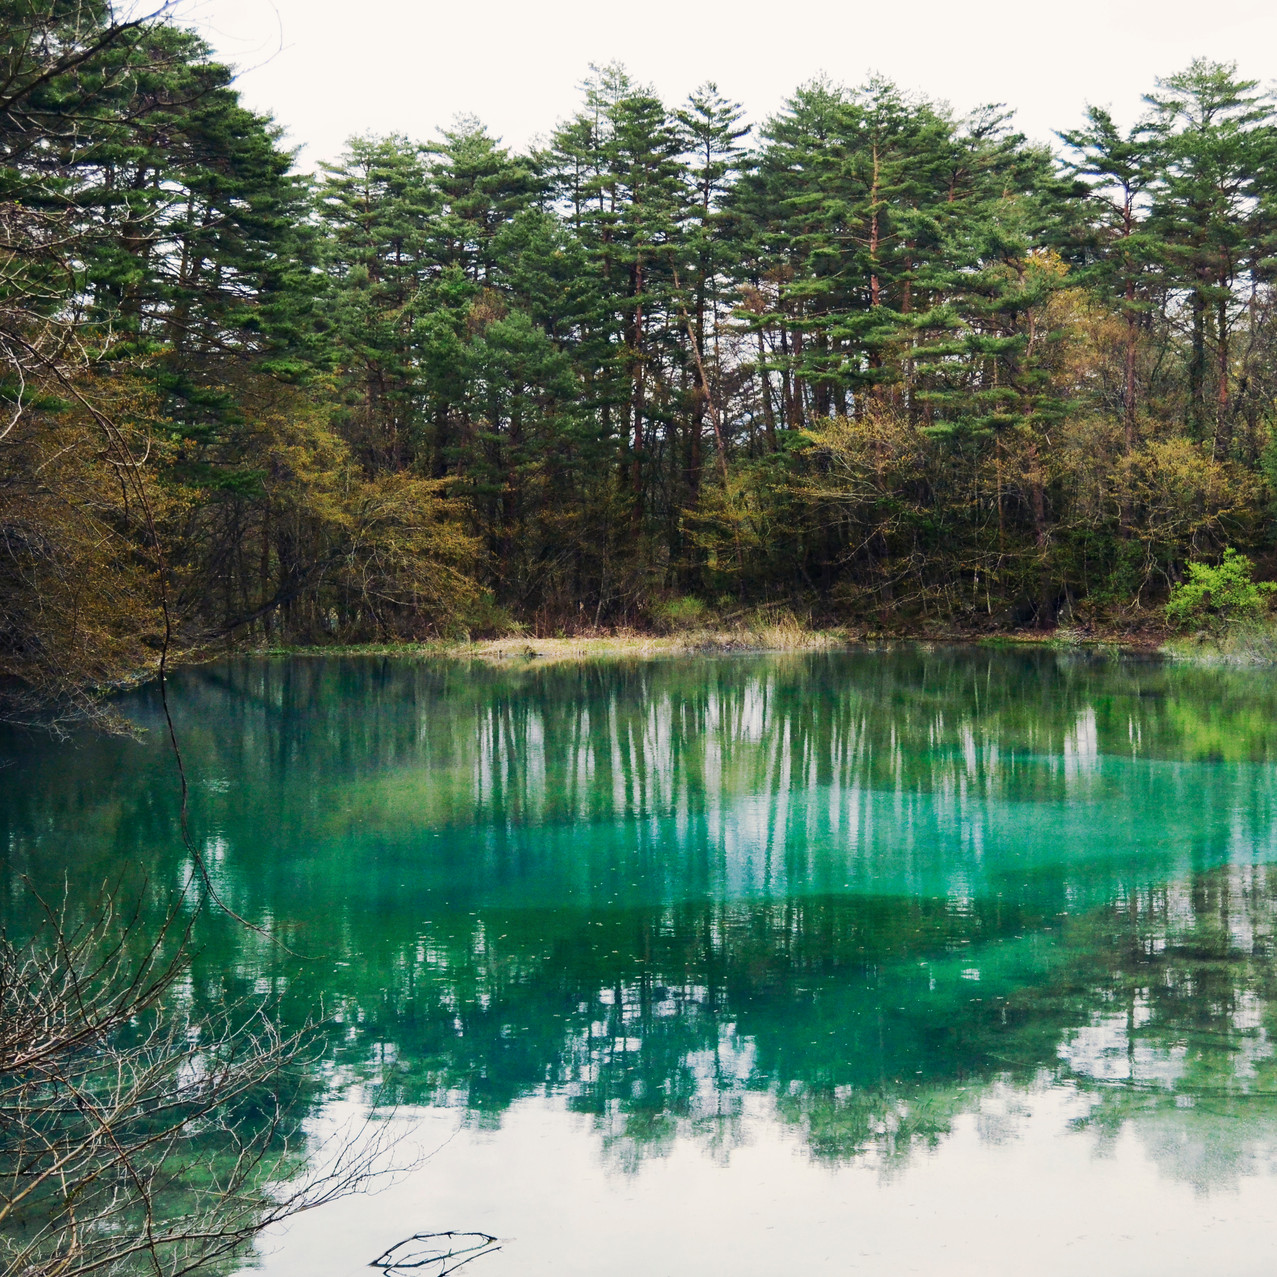 One of the ponds of Goshikinuma.